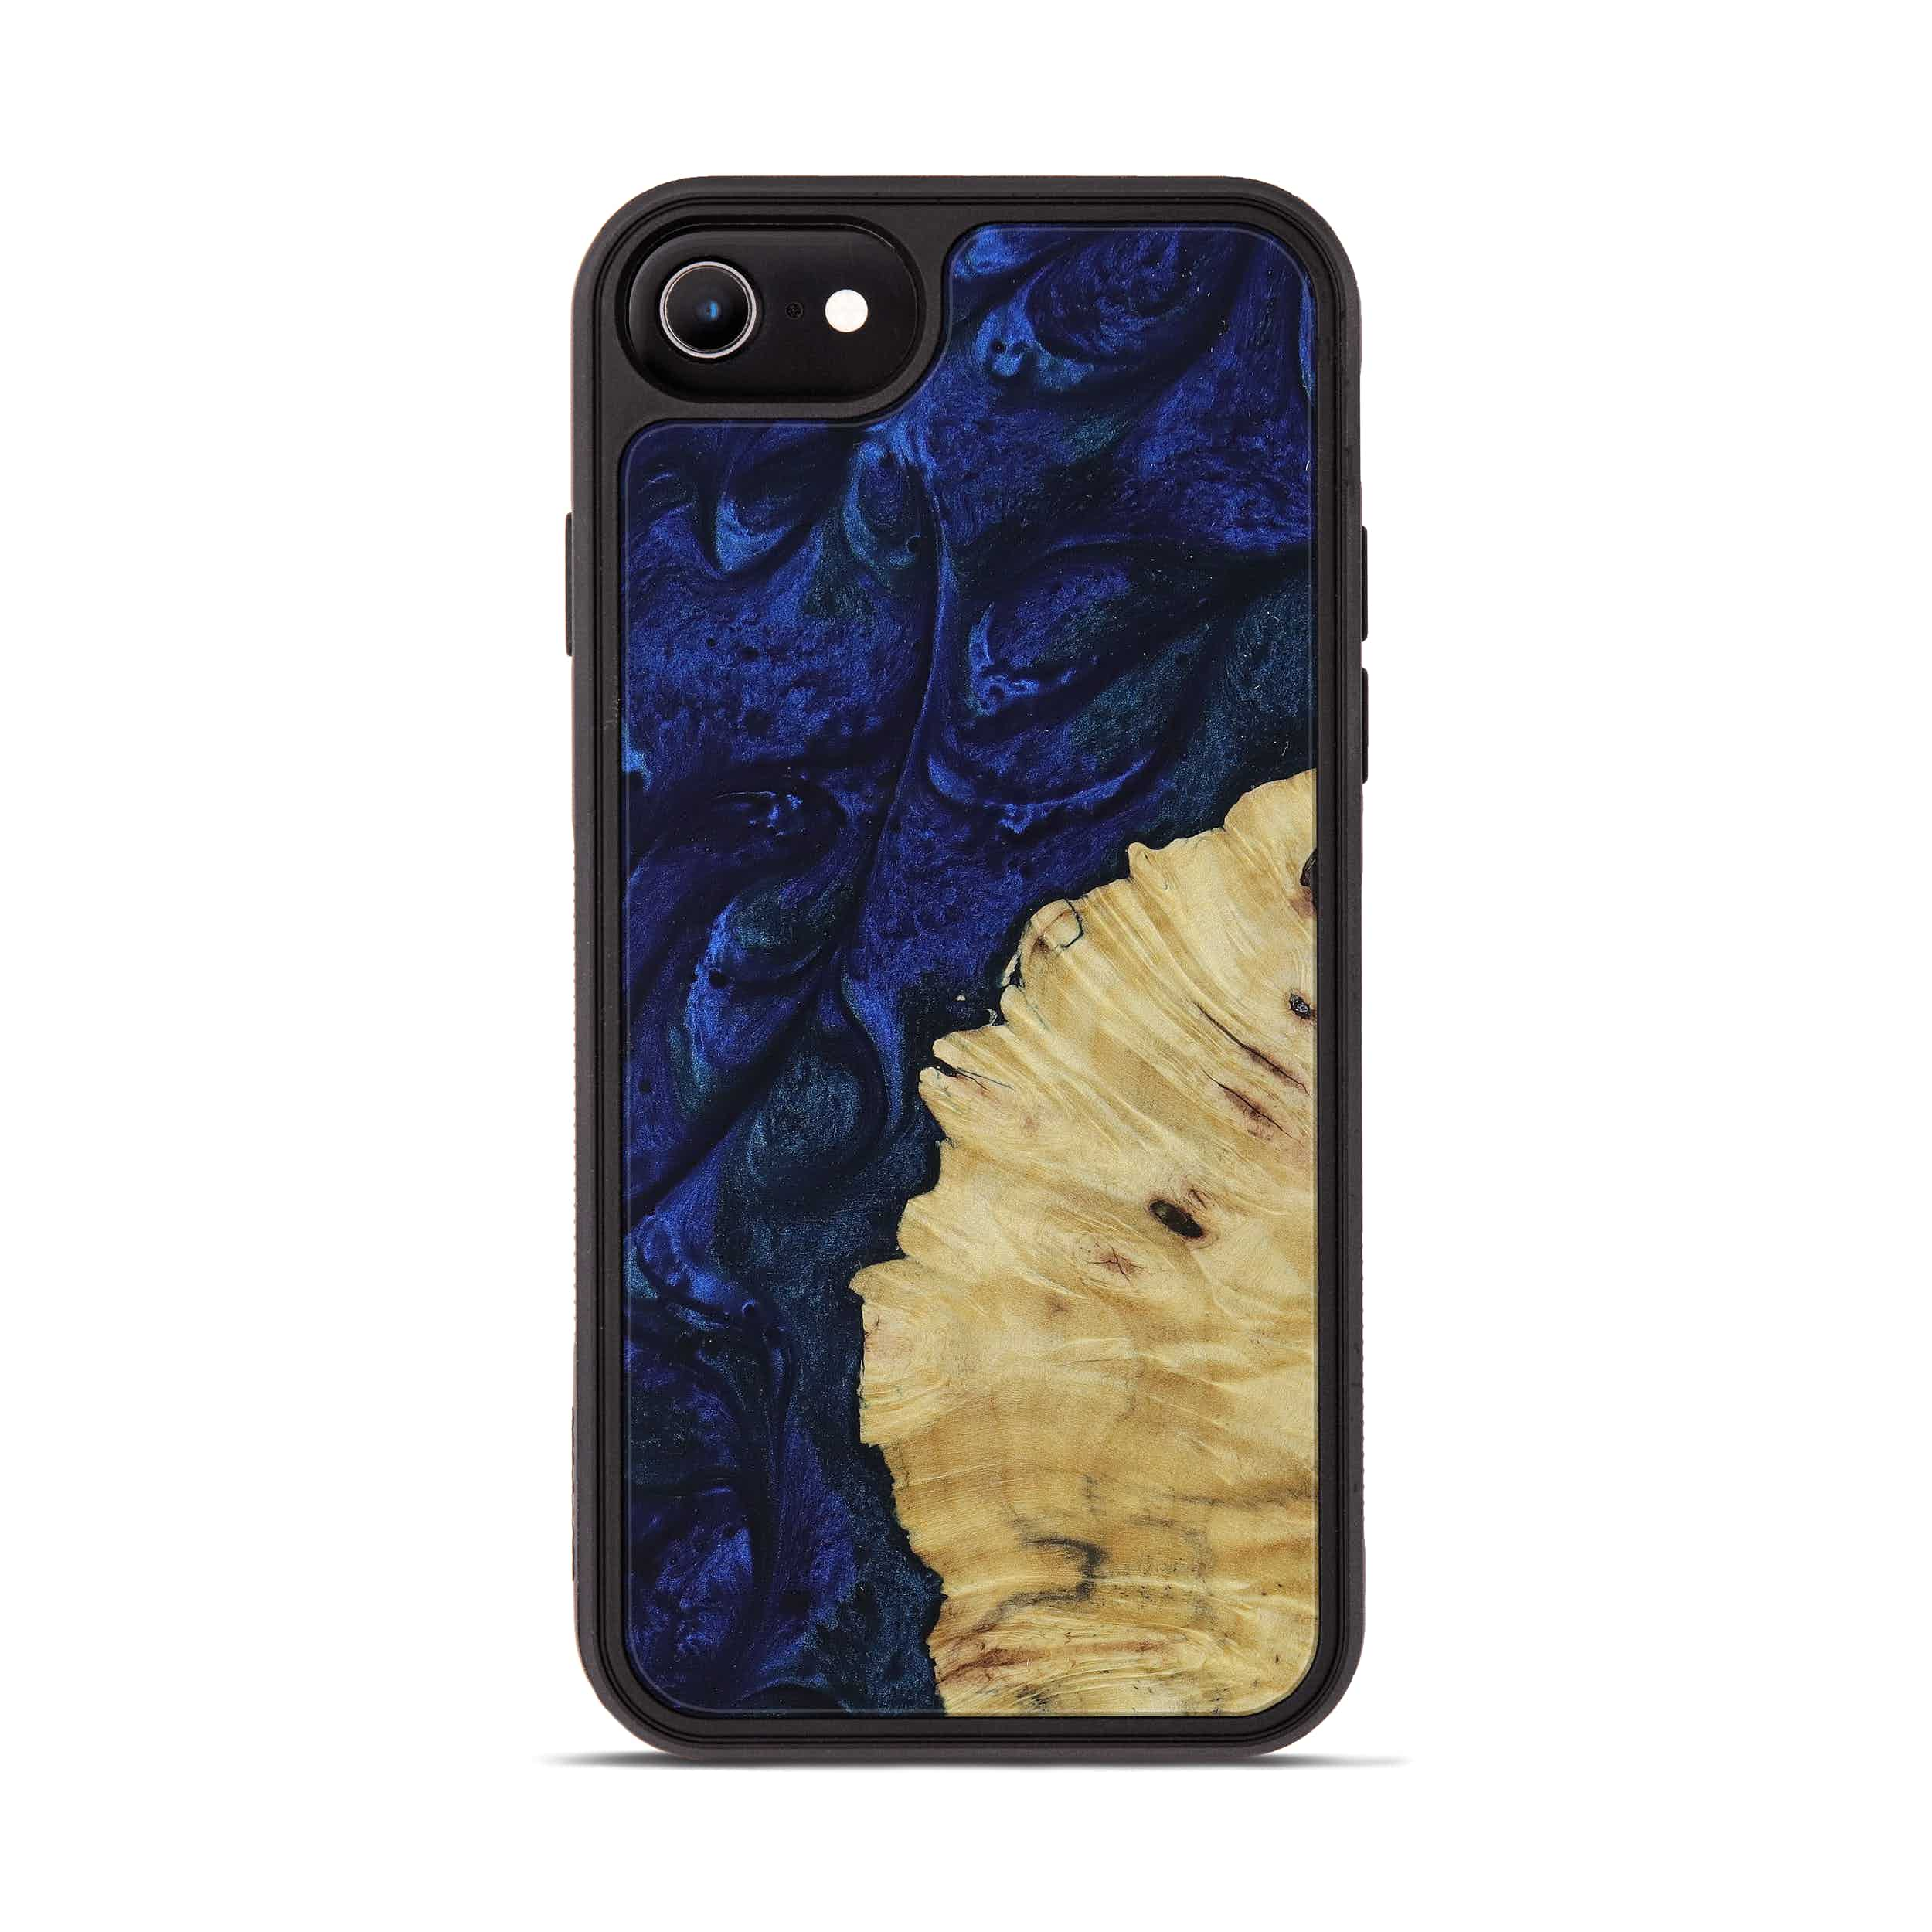 iPhone 6s Wood+Resin Phone Case - Julissa (Dark Blue, 397879)